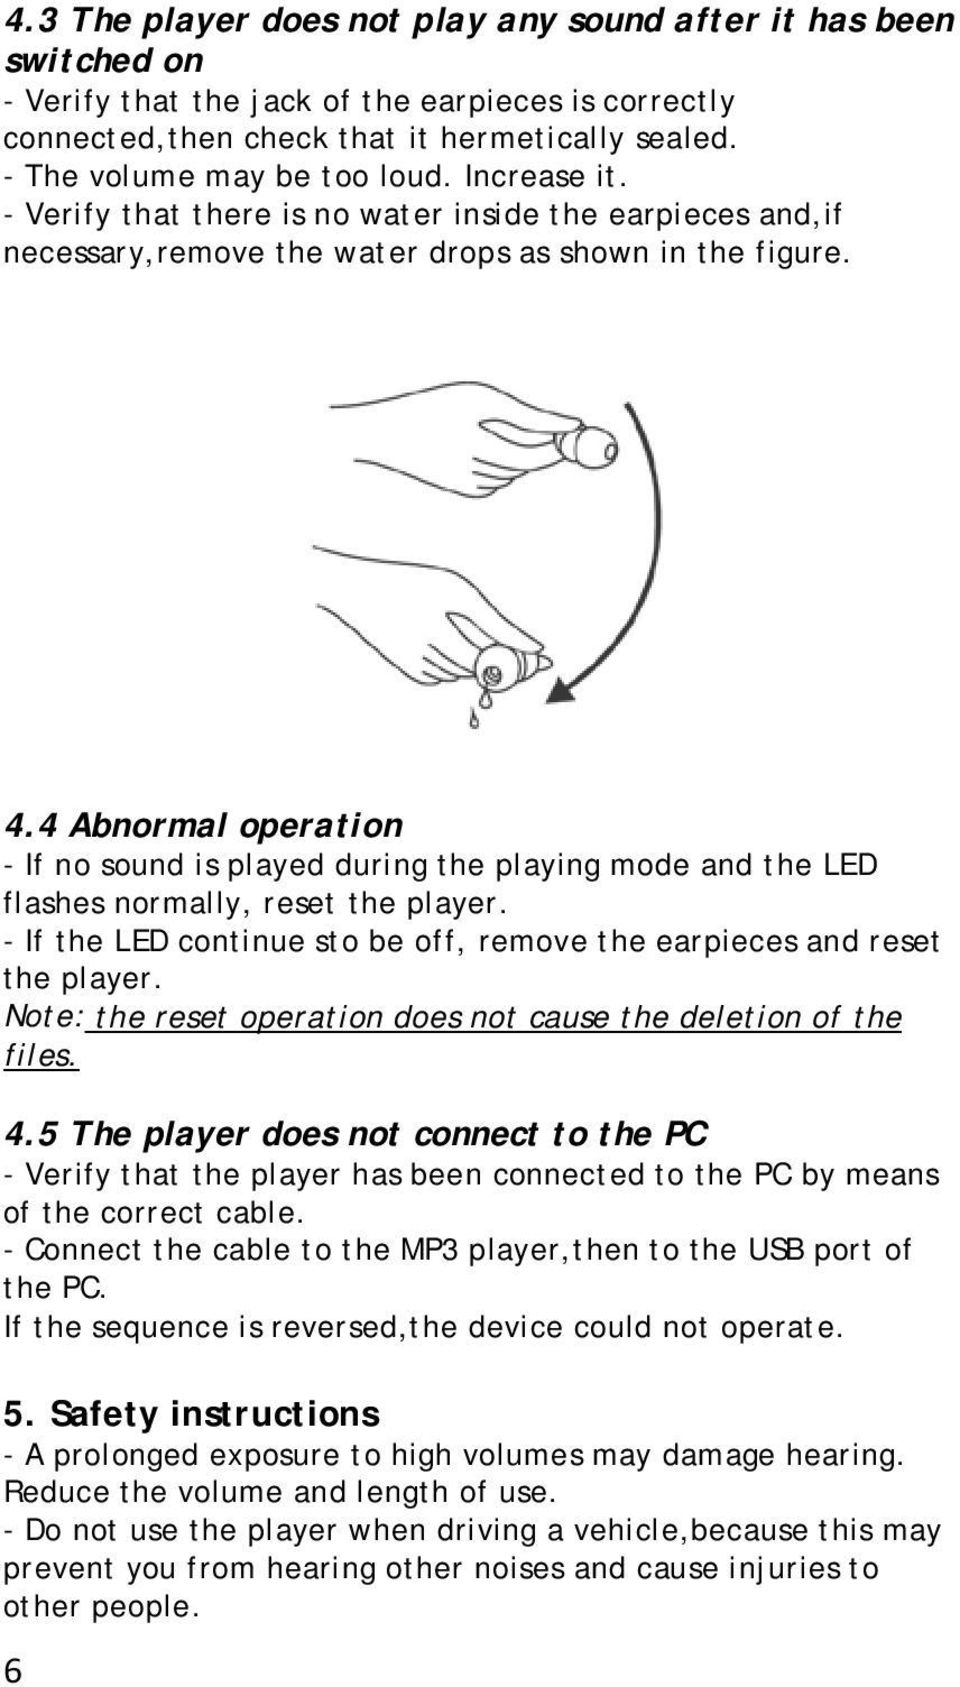 4 Abnormal operation - If no sound is played during the playing mode and the LED flashes normally, reset the player. - If the LED continue sto be off, remove the earpieces and reset the player.